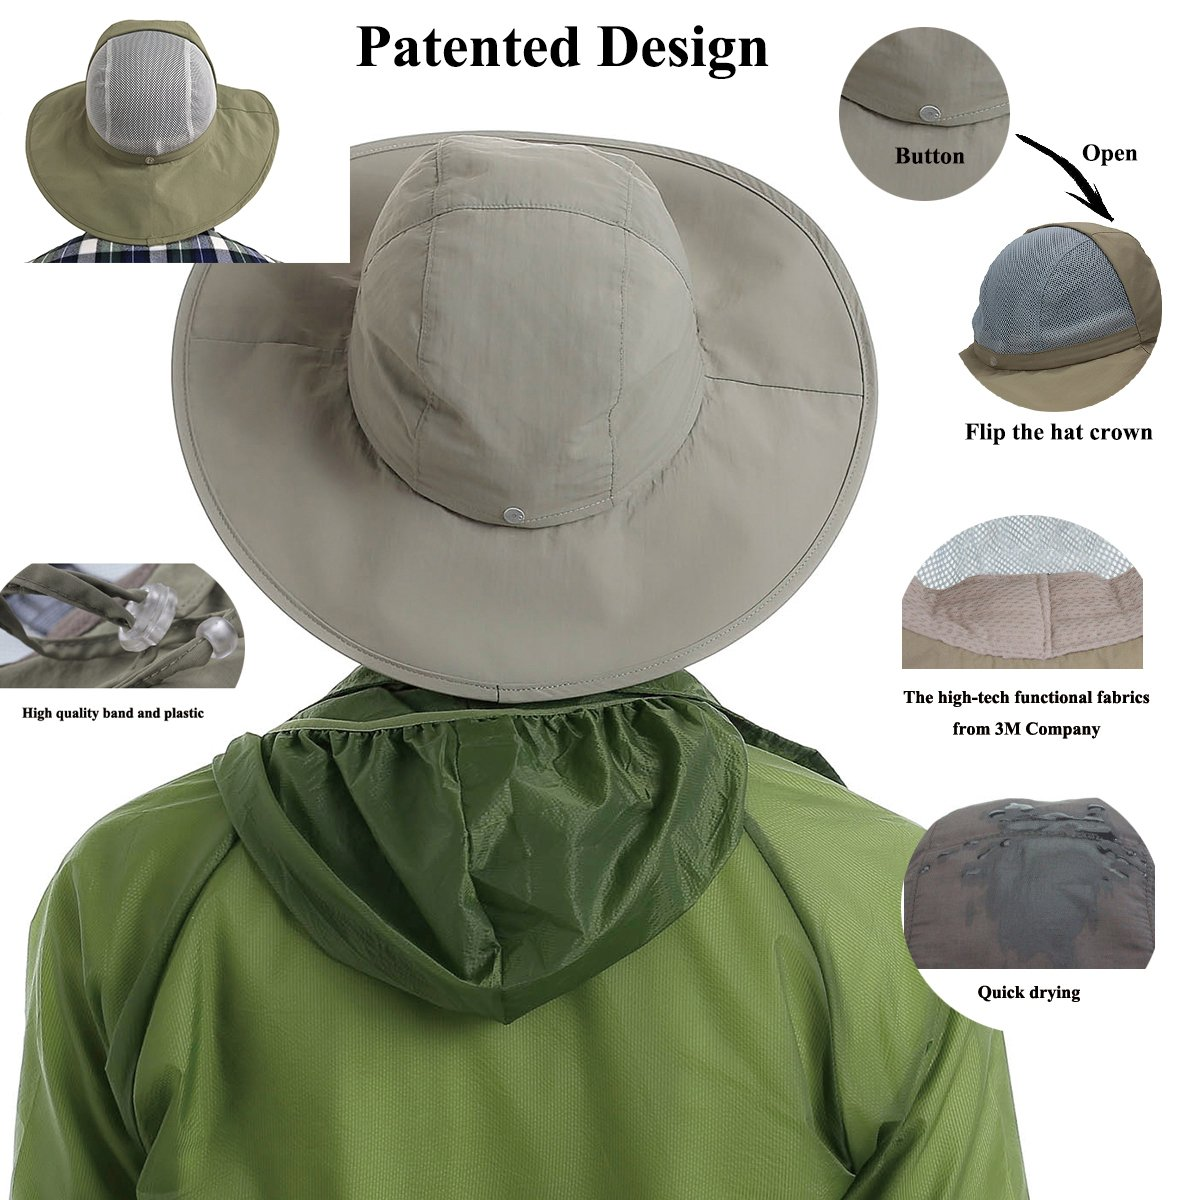 e6412b766b07d Surblue Crushable Ventilated Bucket Wide Brim Sombriolet Sun Hat Safari Hat  -Sun Protective UPF 50+  Amazon.co.uk  Sports   Outdoors